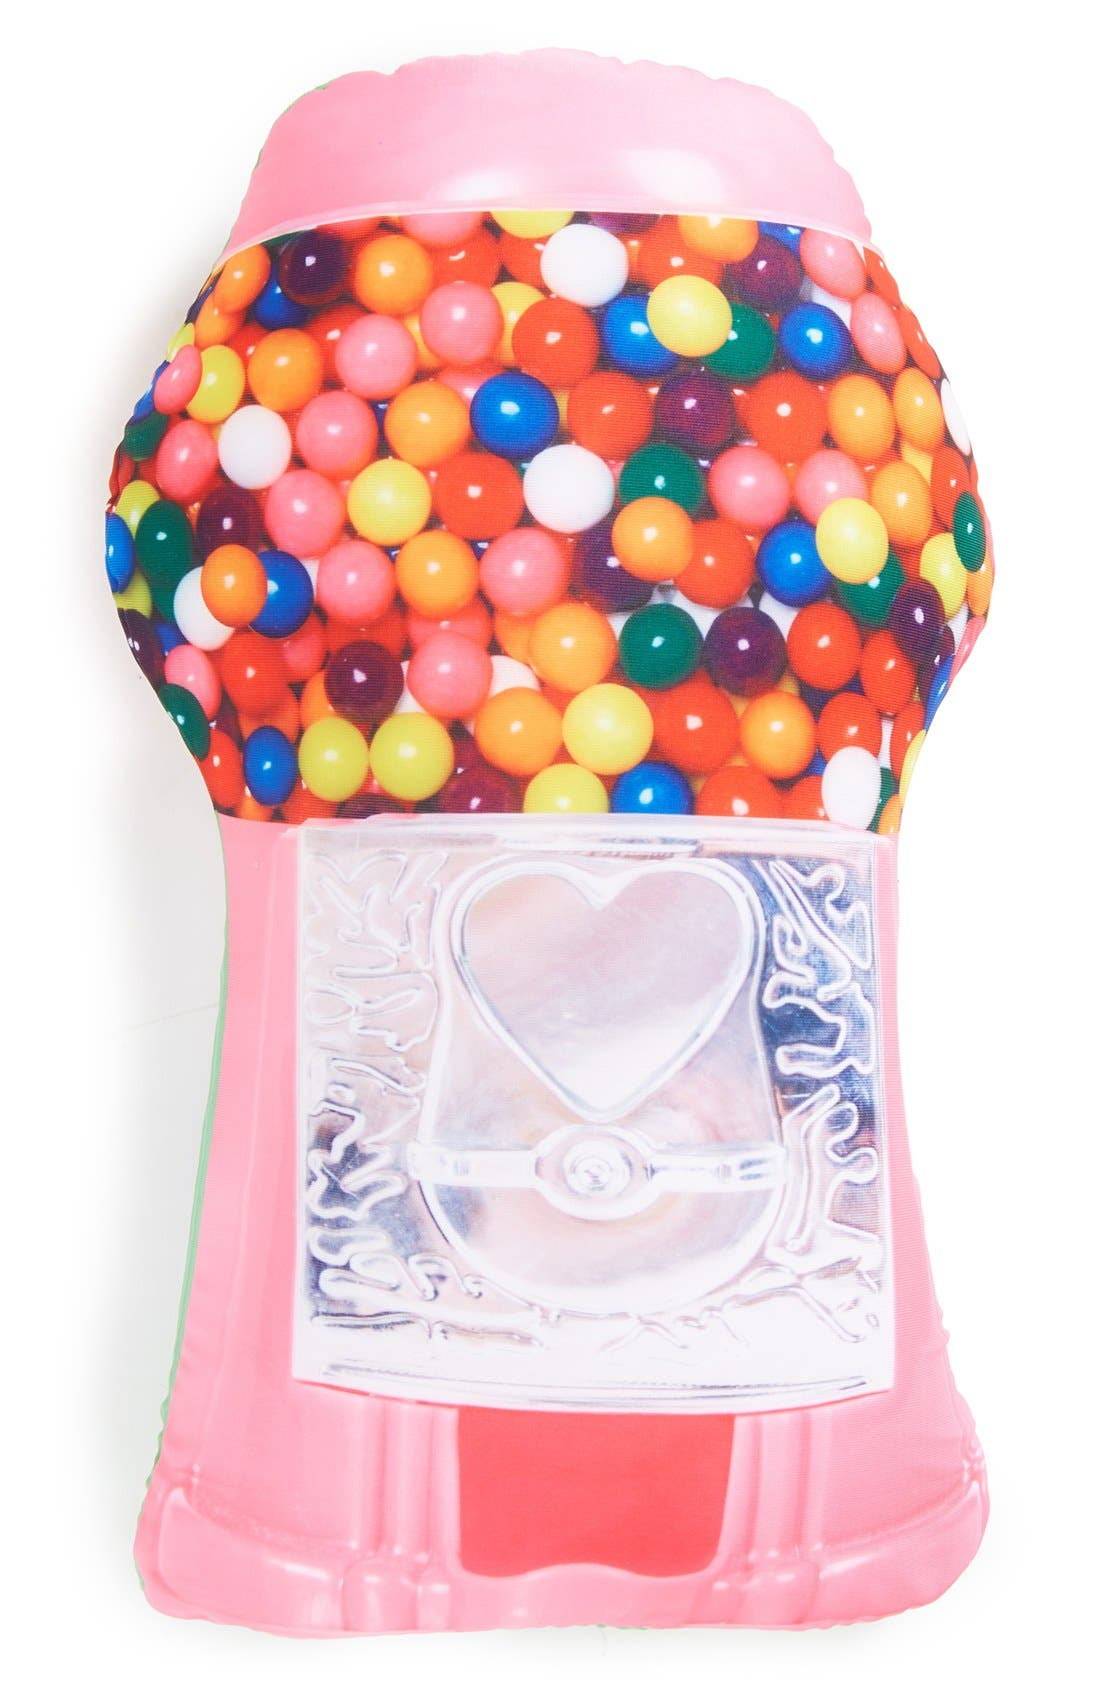 Alternate Image 1 Selected - Iscream Scented Gumball Machine Pillow (Girls)